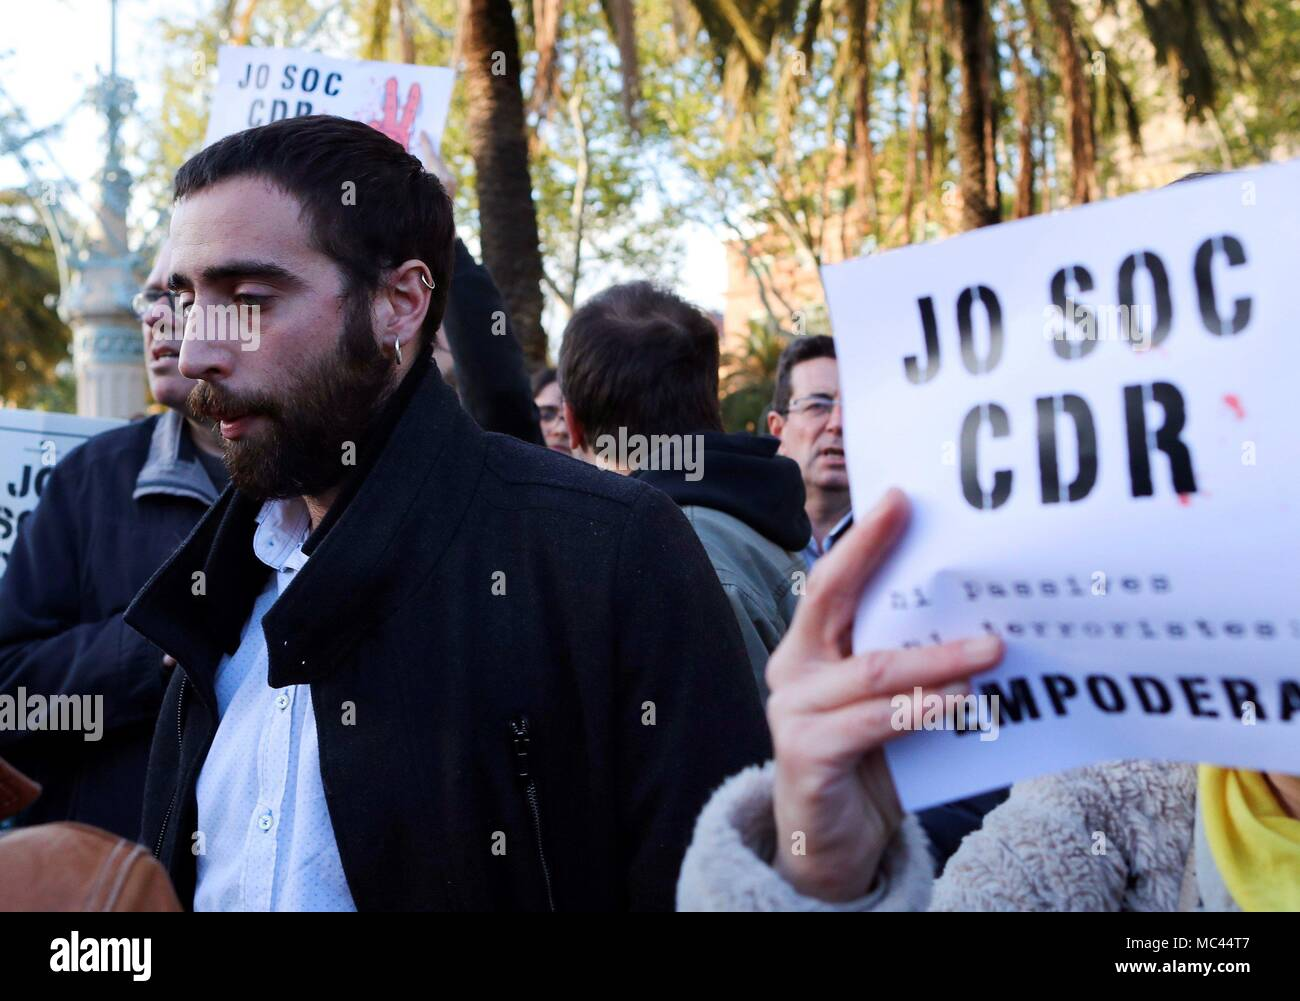 Attorney David Aranda during a press conference at the rally to support the Republic's Defense Committees in Barcelona, Catalonia, Spain, 12 April 2018. EFE/Alejandro Garcia Stock Photo